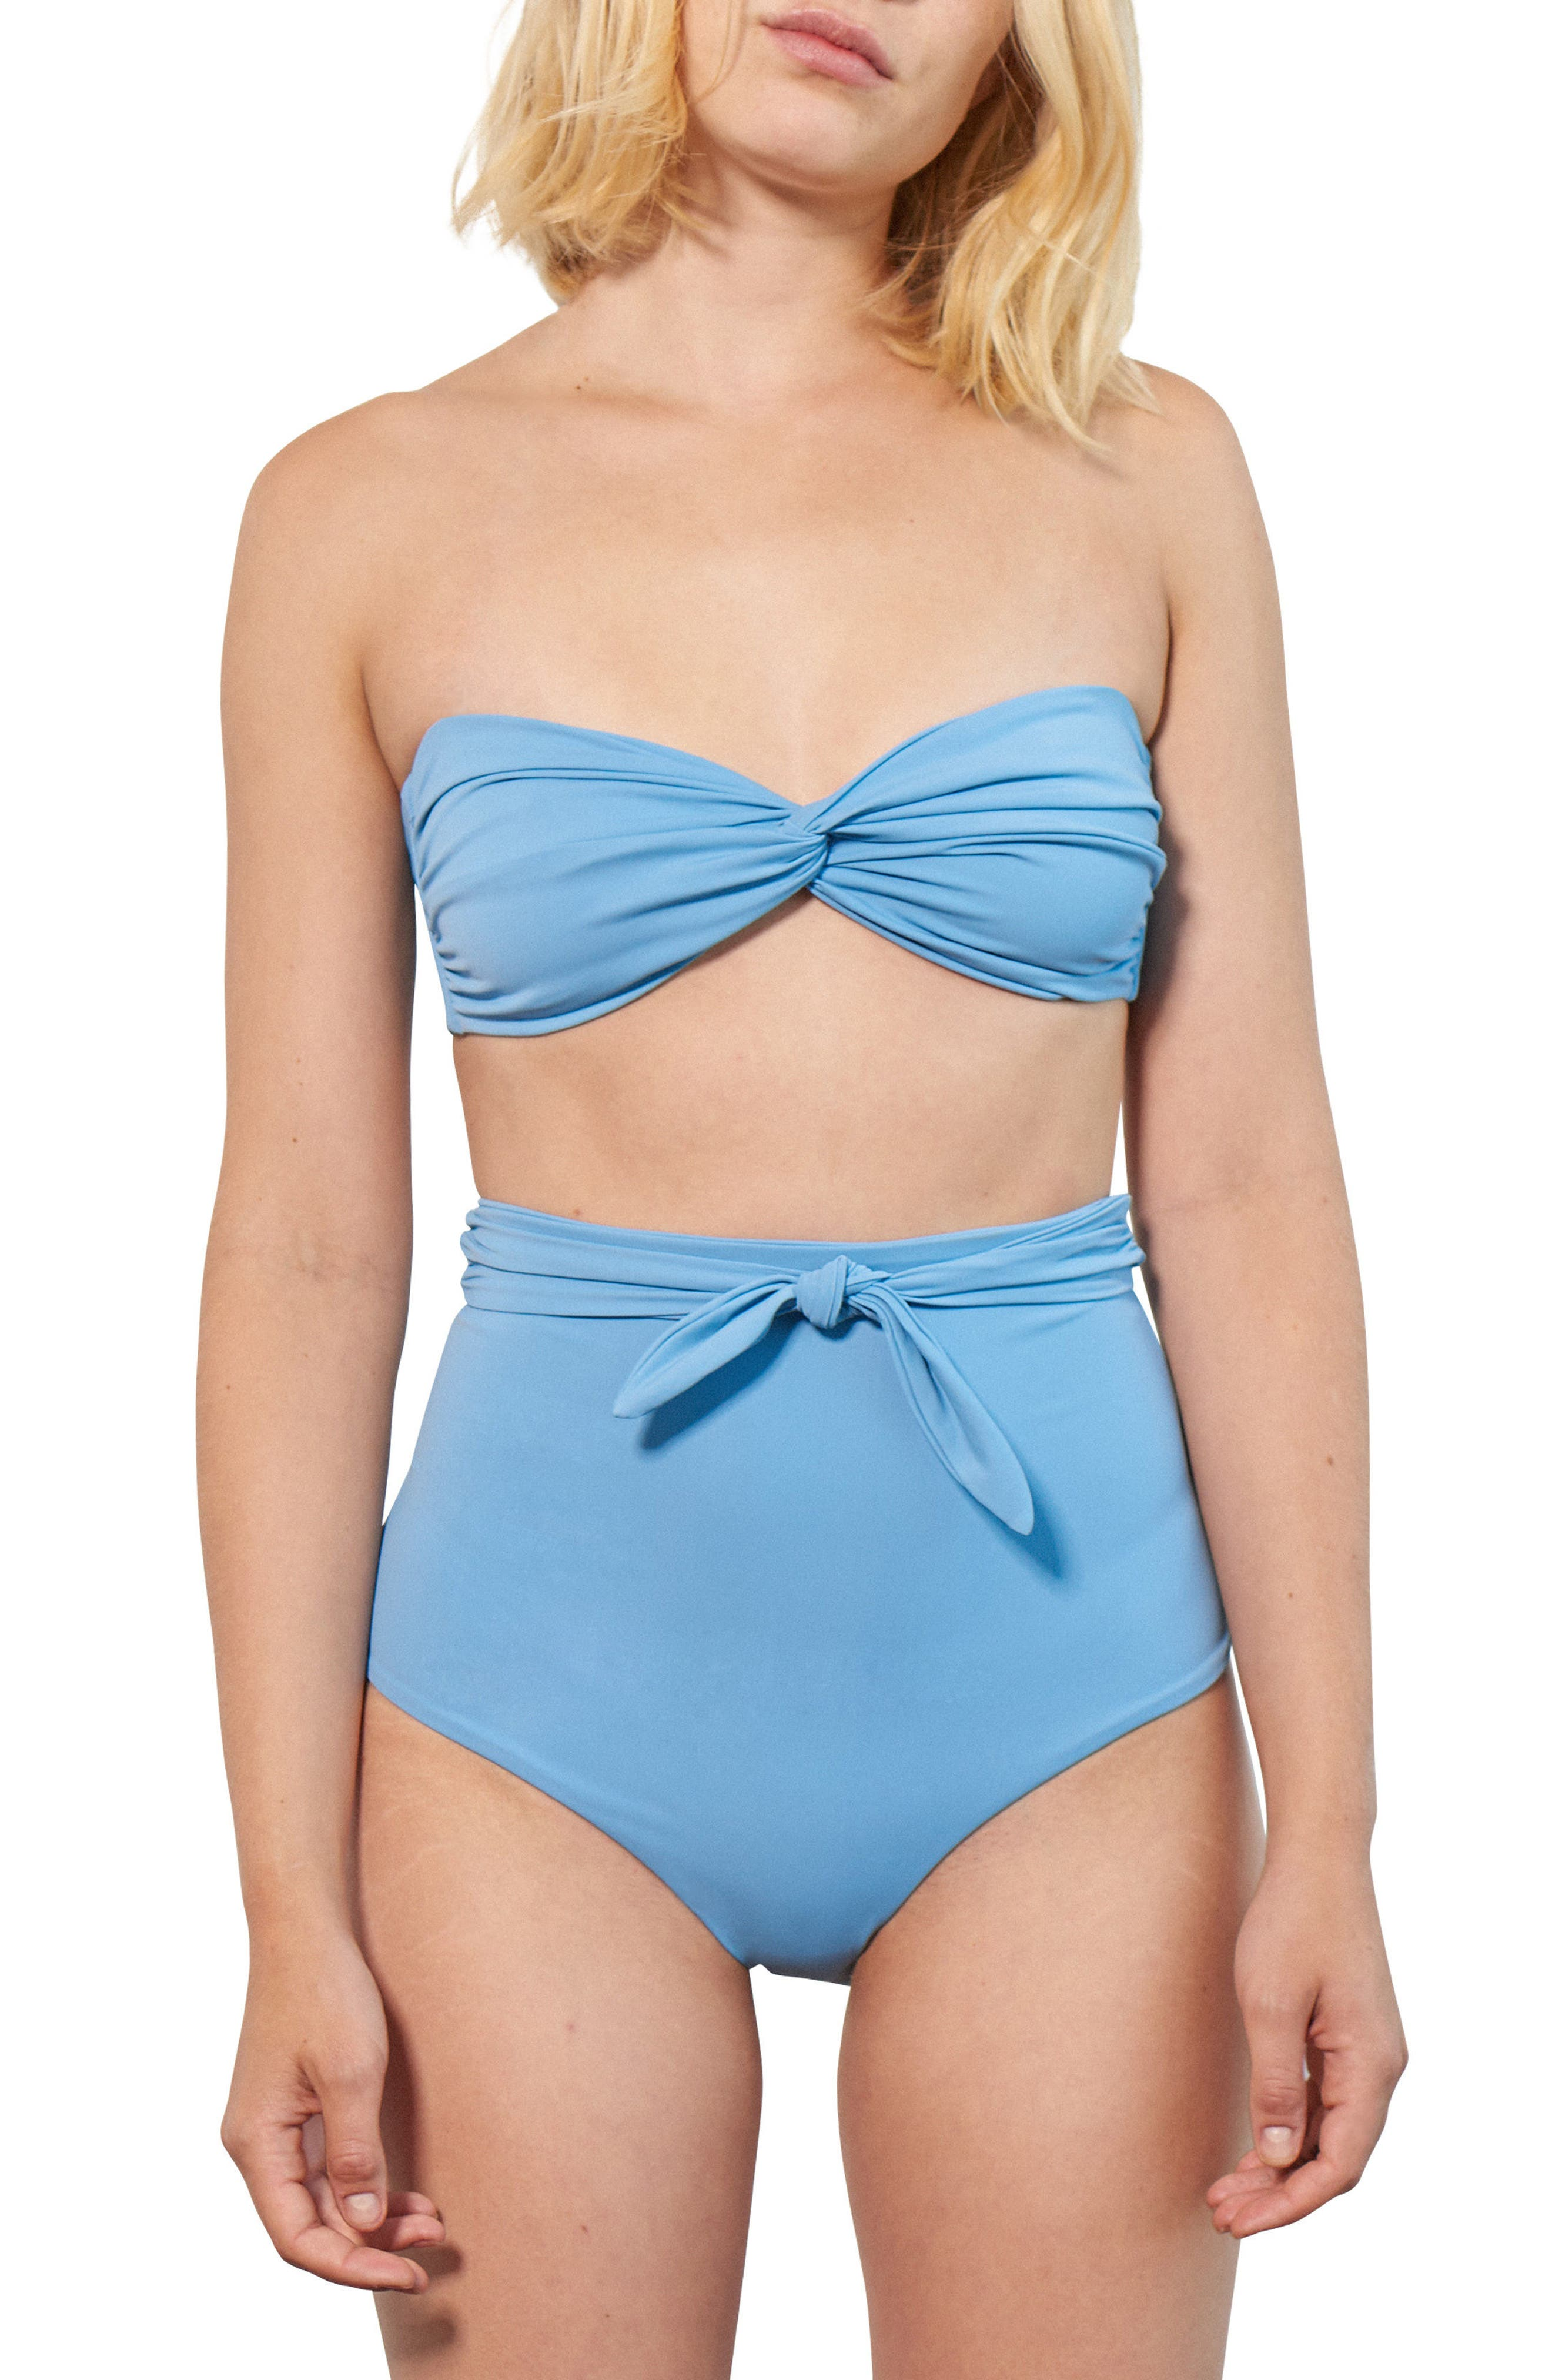 Chey Twist Bikini Top,                             Alternate thumbnail 3, color,                             427